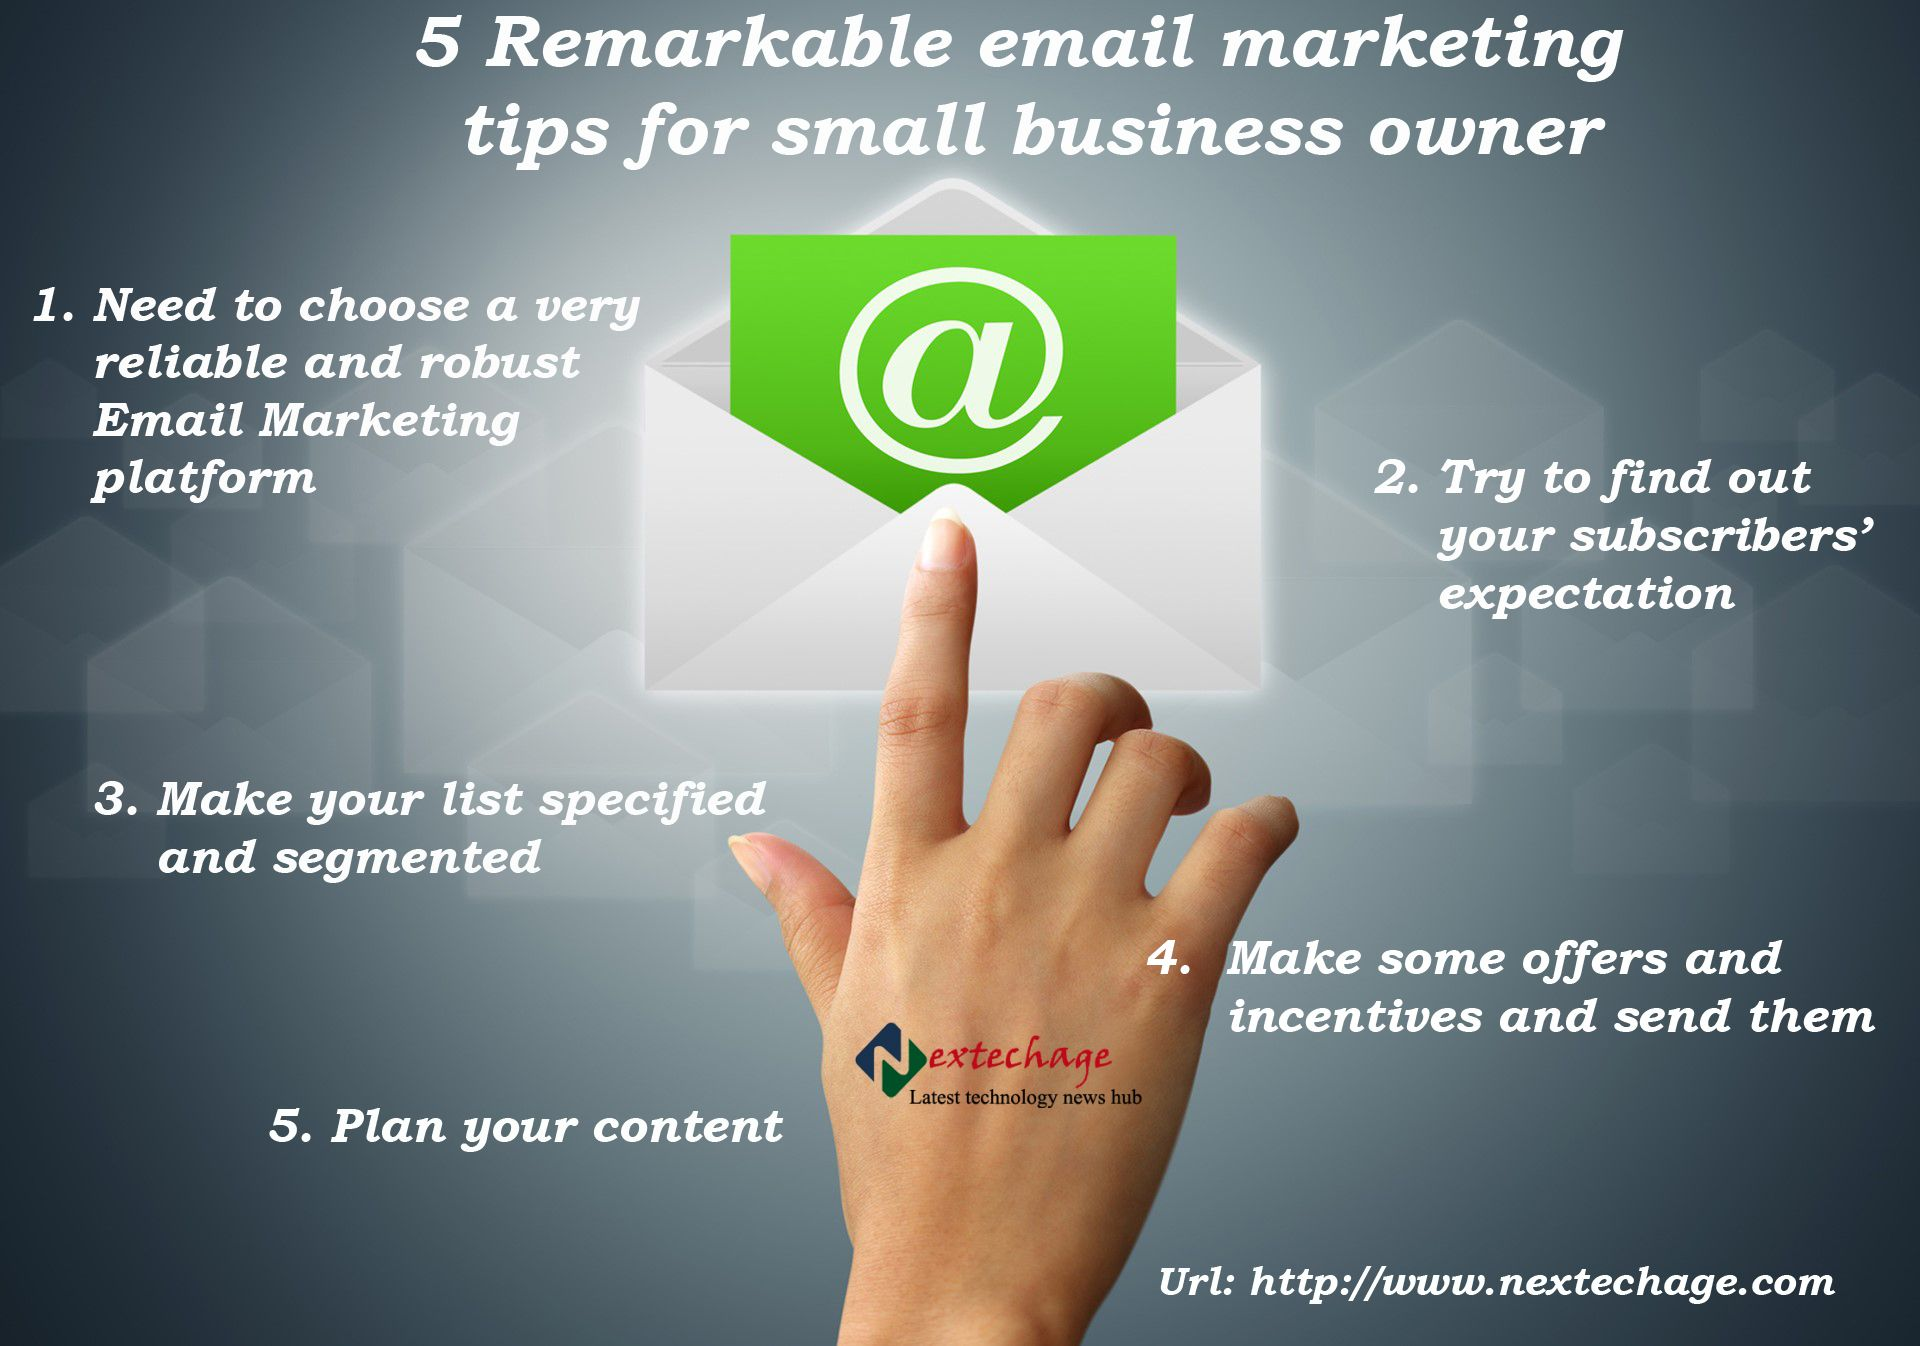 Email Marketing Tips for Small Business owner.